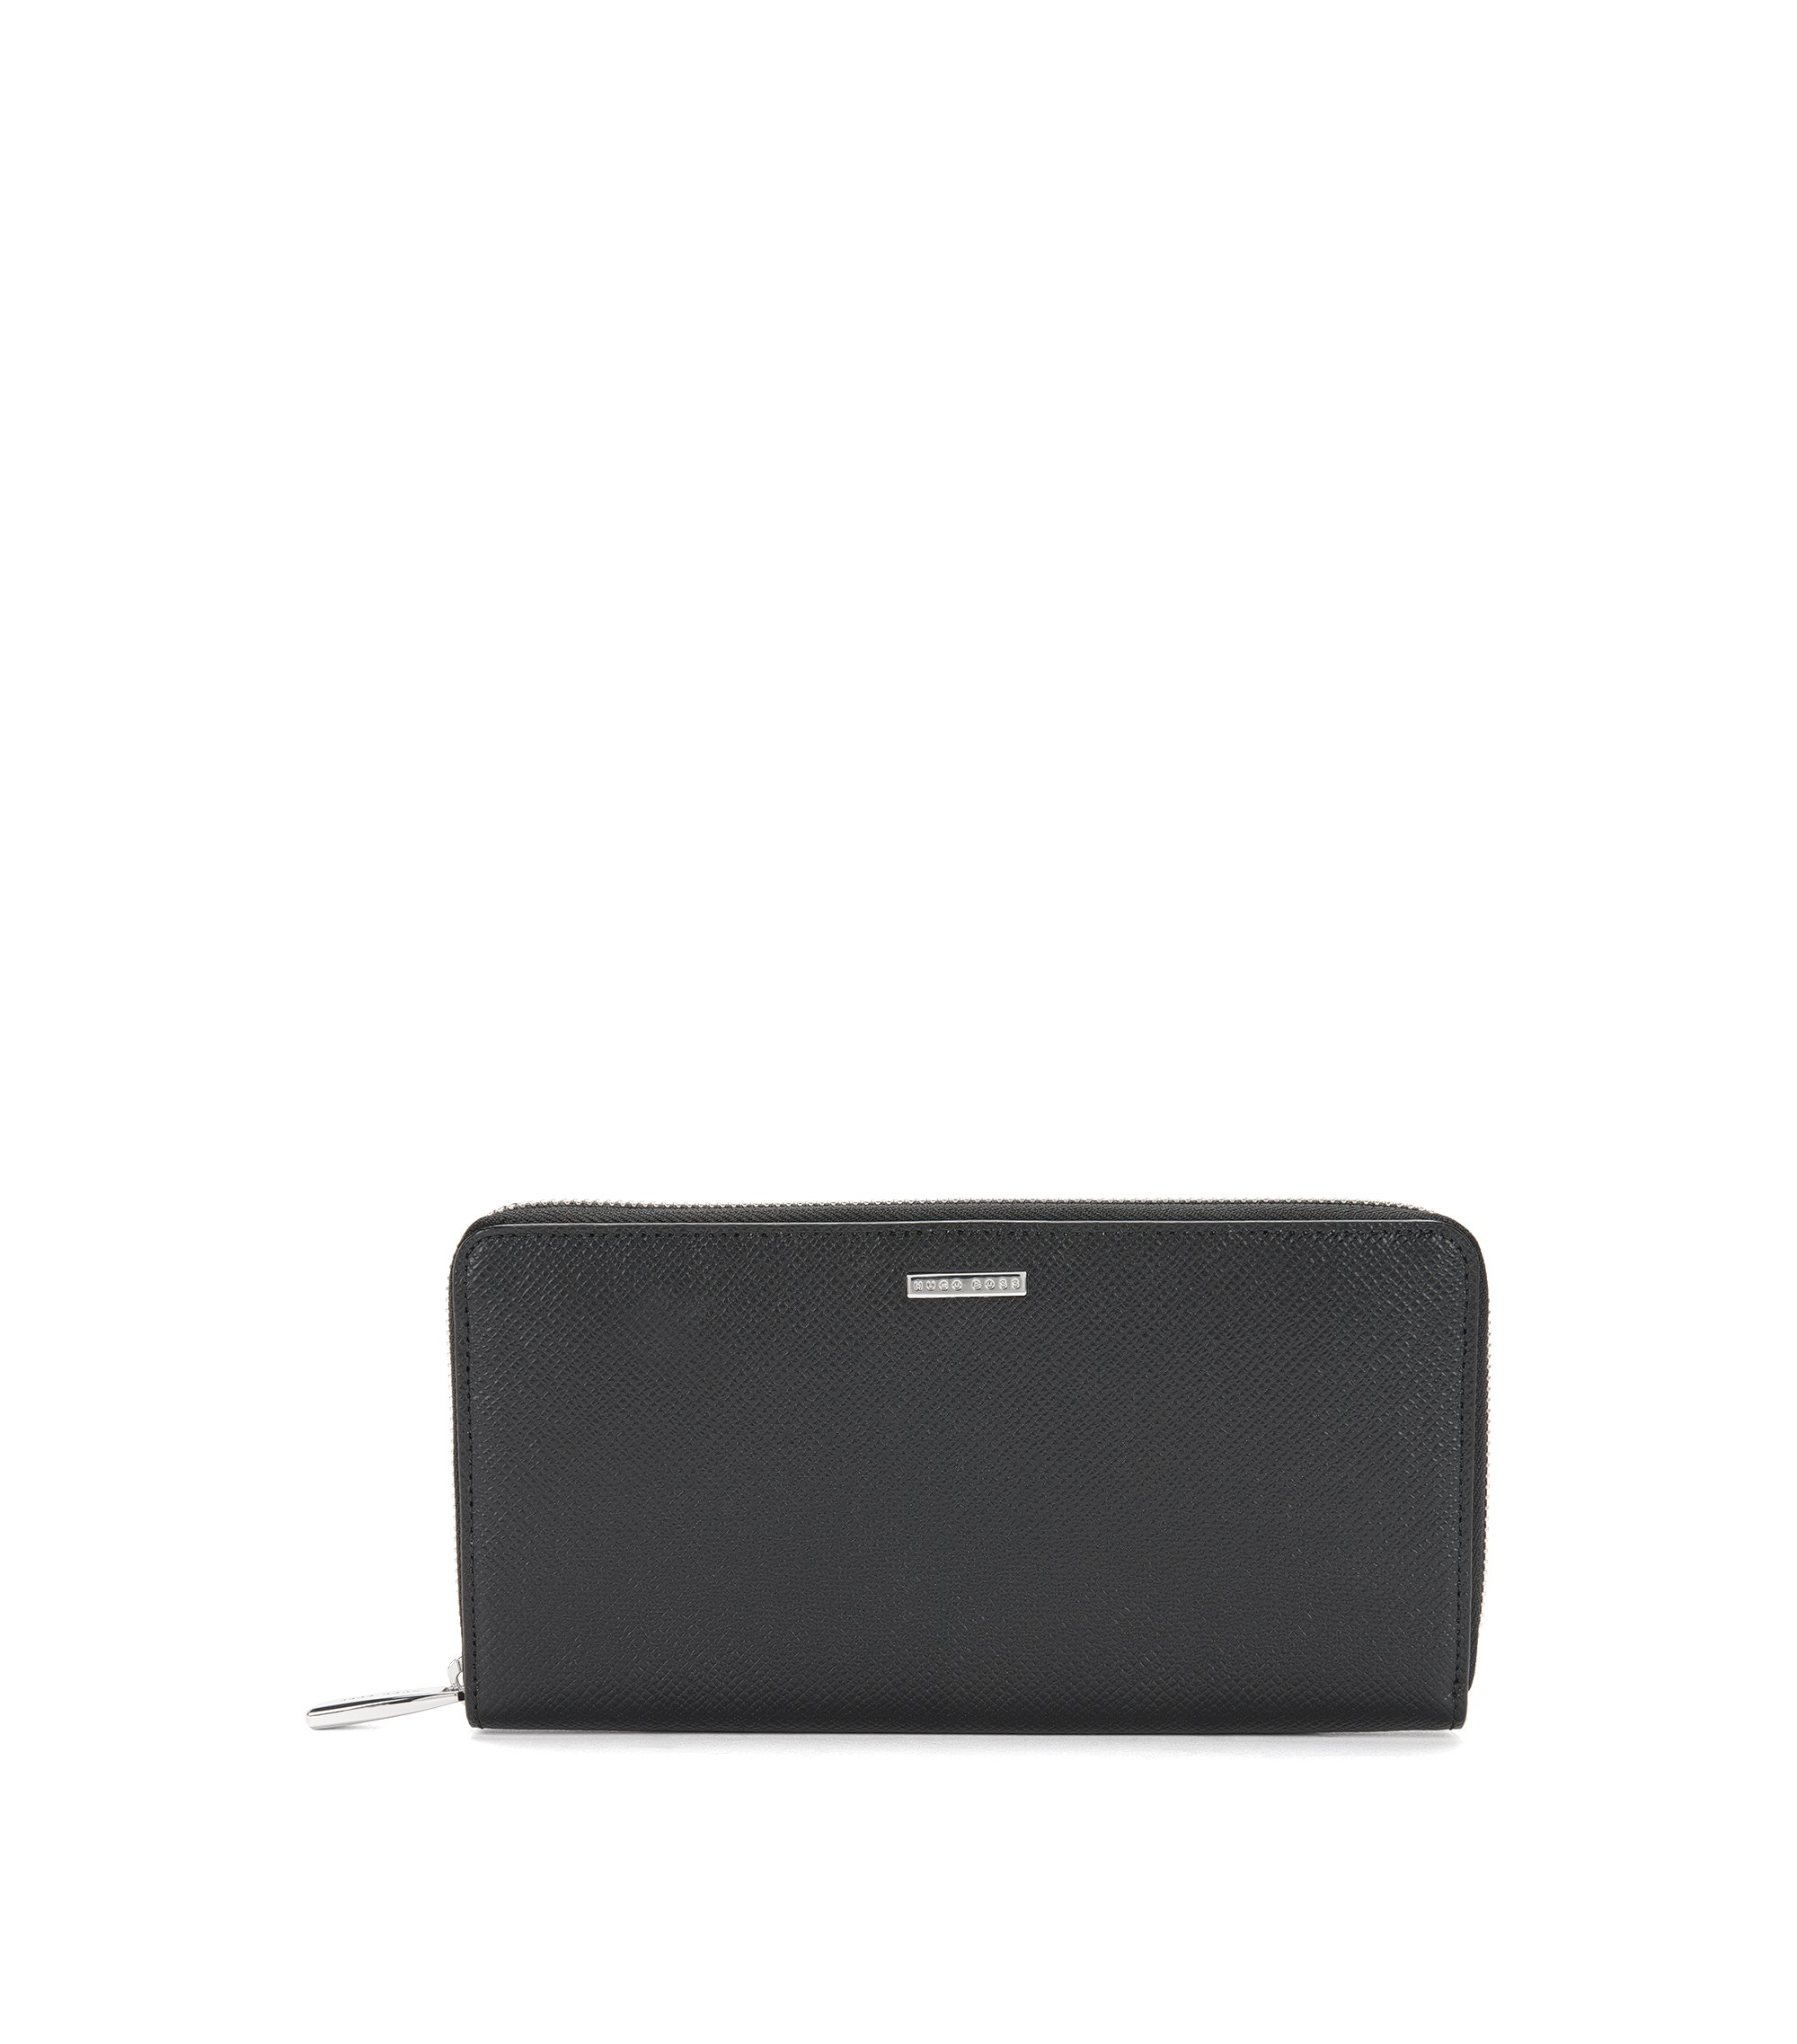 Embossed Leather Wallet | Signature S Zip Trav, Black